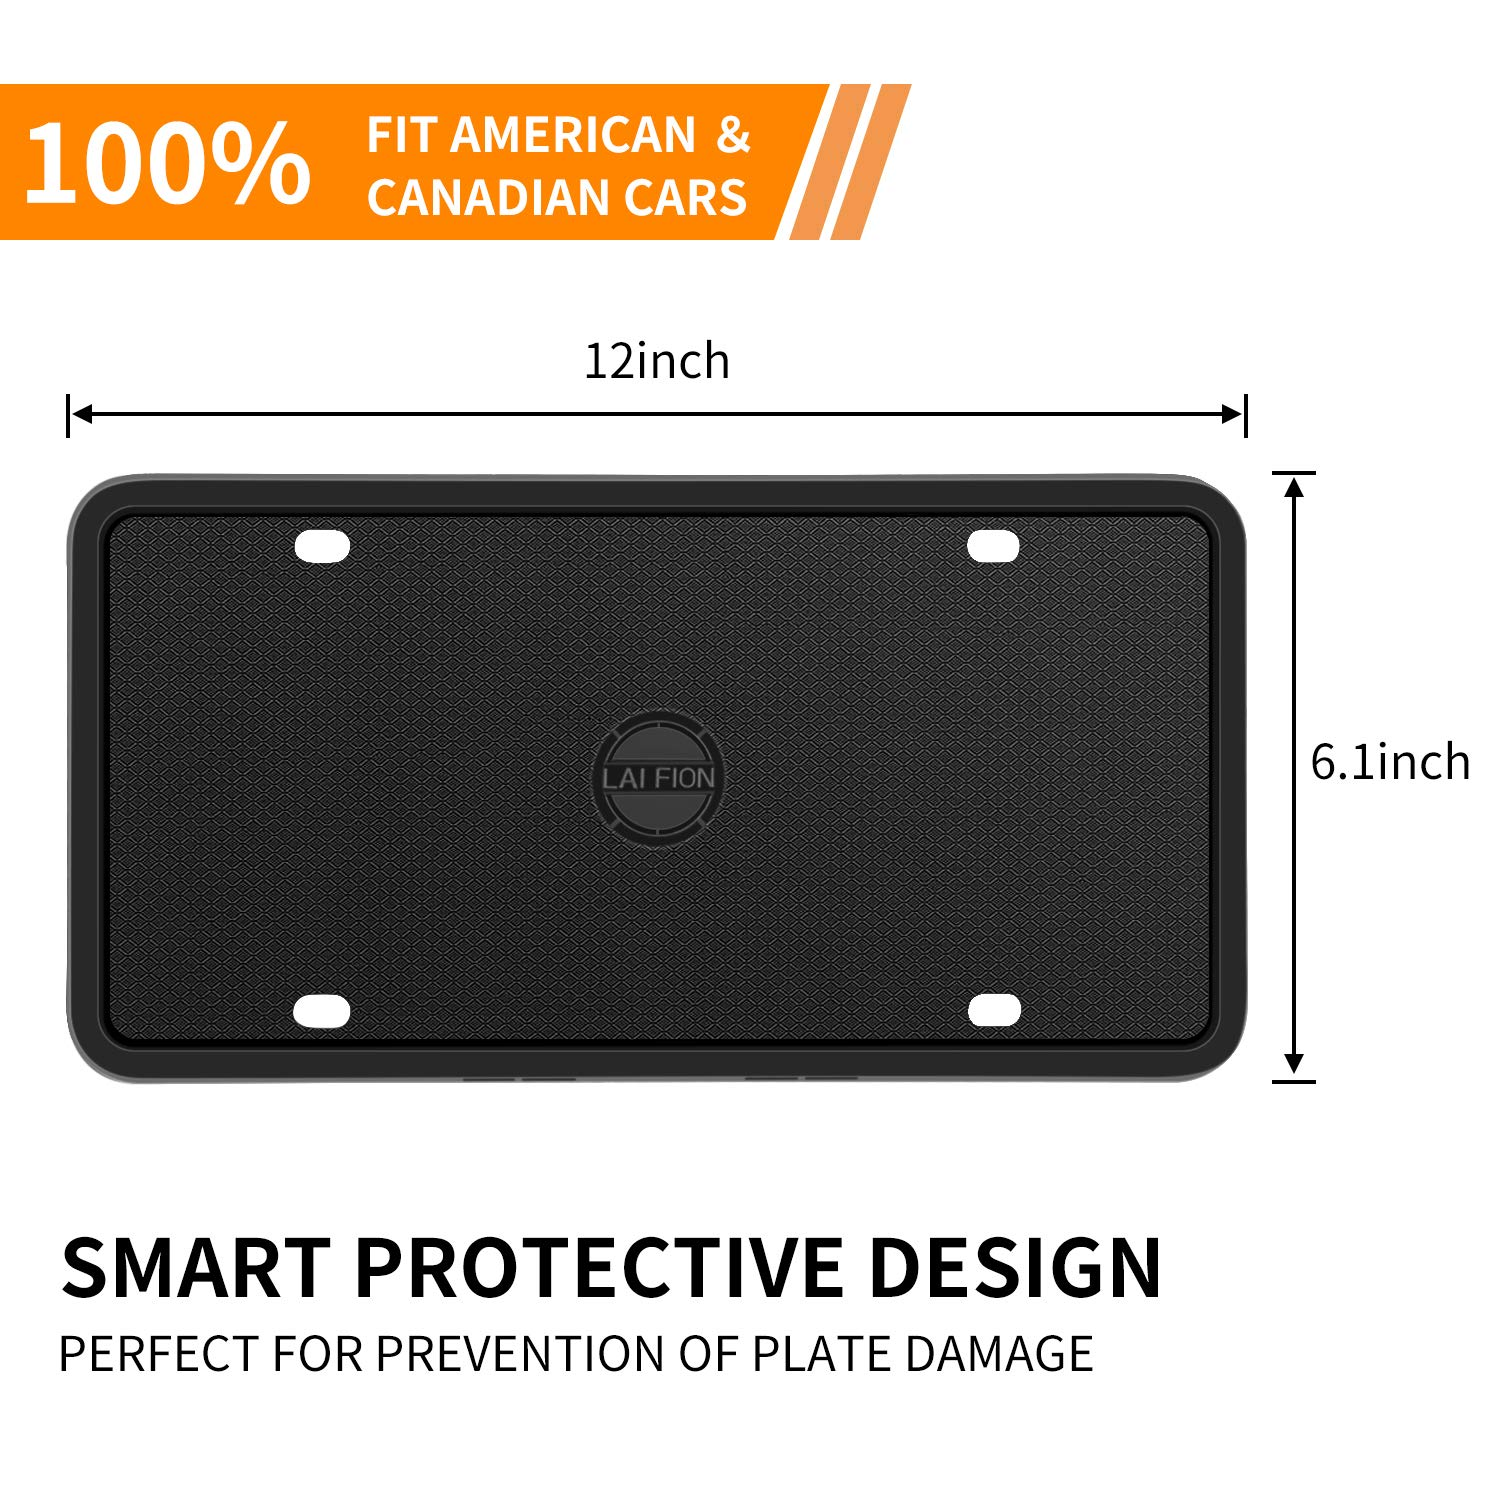 Stainless Steel Screws 2Pcs 4 Holes Black License Plate Covers Front//Rear Tag Holder Rust-Proof Rattle-Proof Weather-Proof with Black Screw Caps LAI FION Silicone License Plate Frames